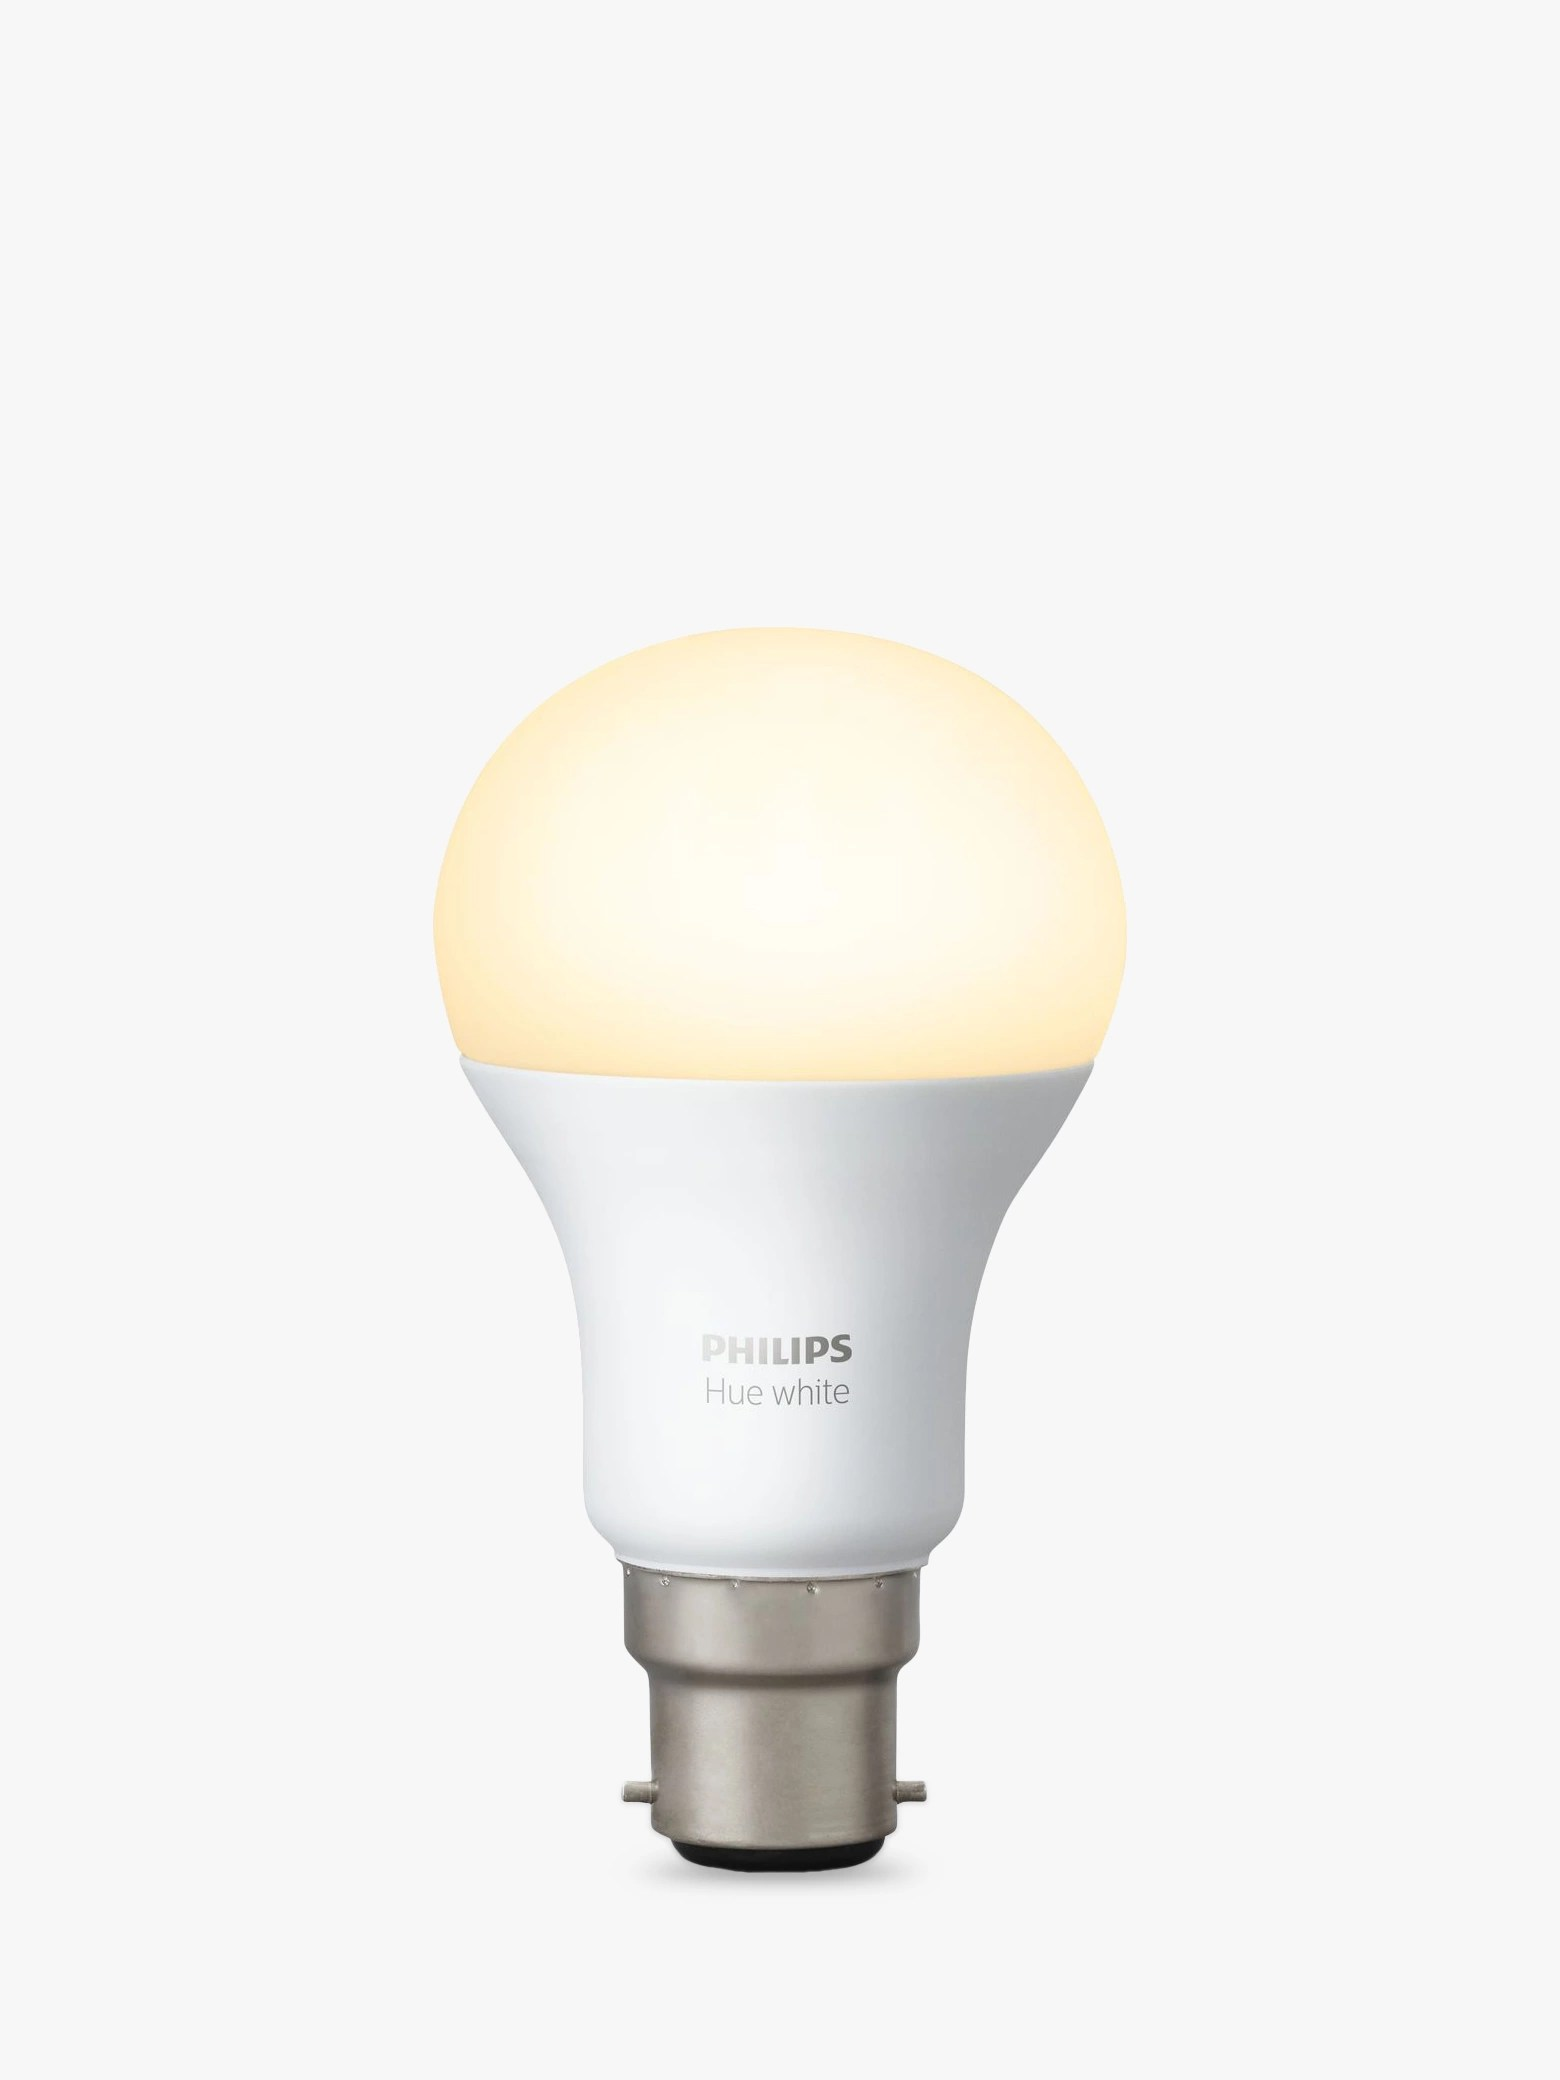 Hue Fitting Philips Hue White 9w A60 Smart Bulb B22 Fitting At John Lewis